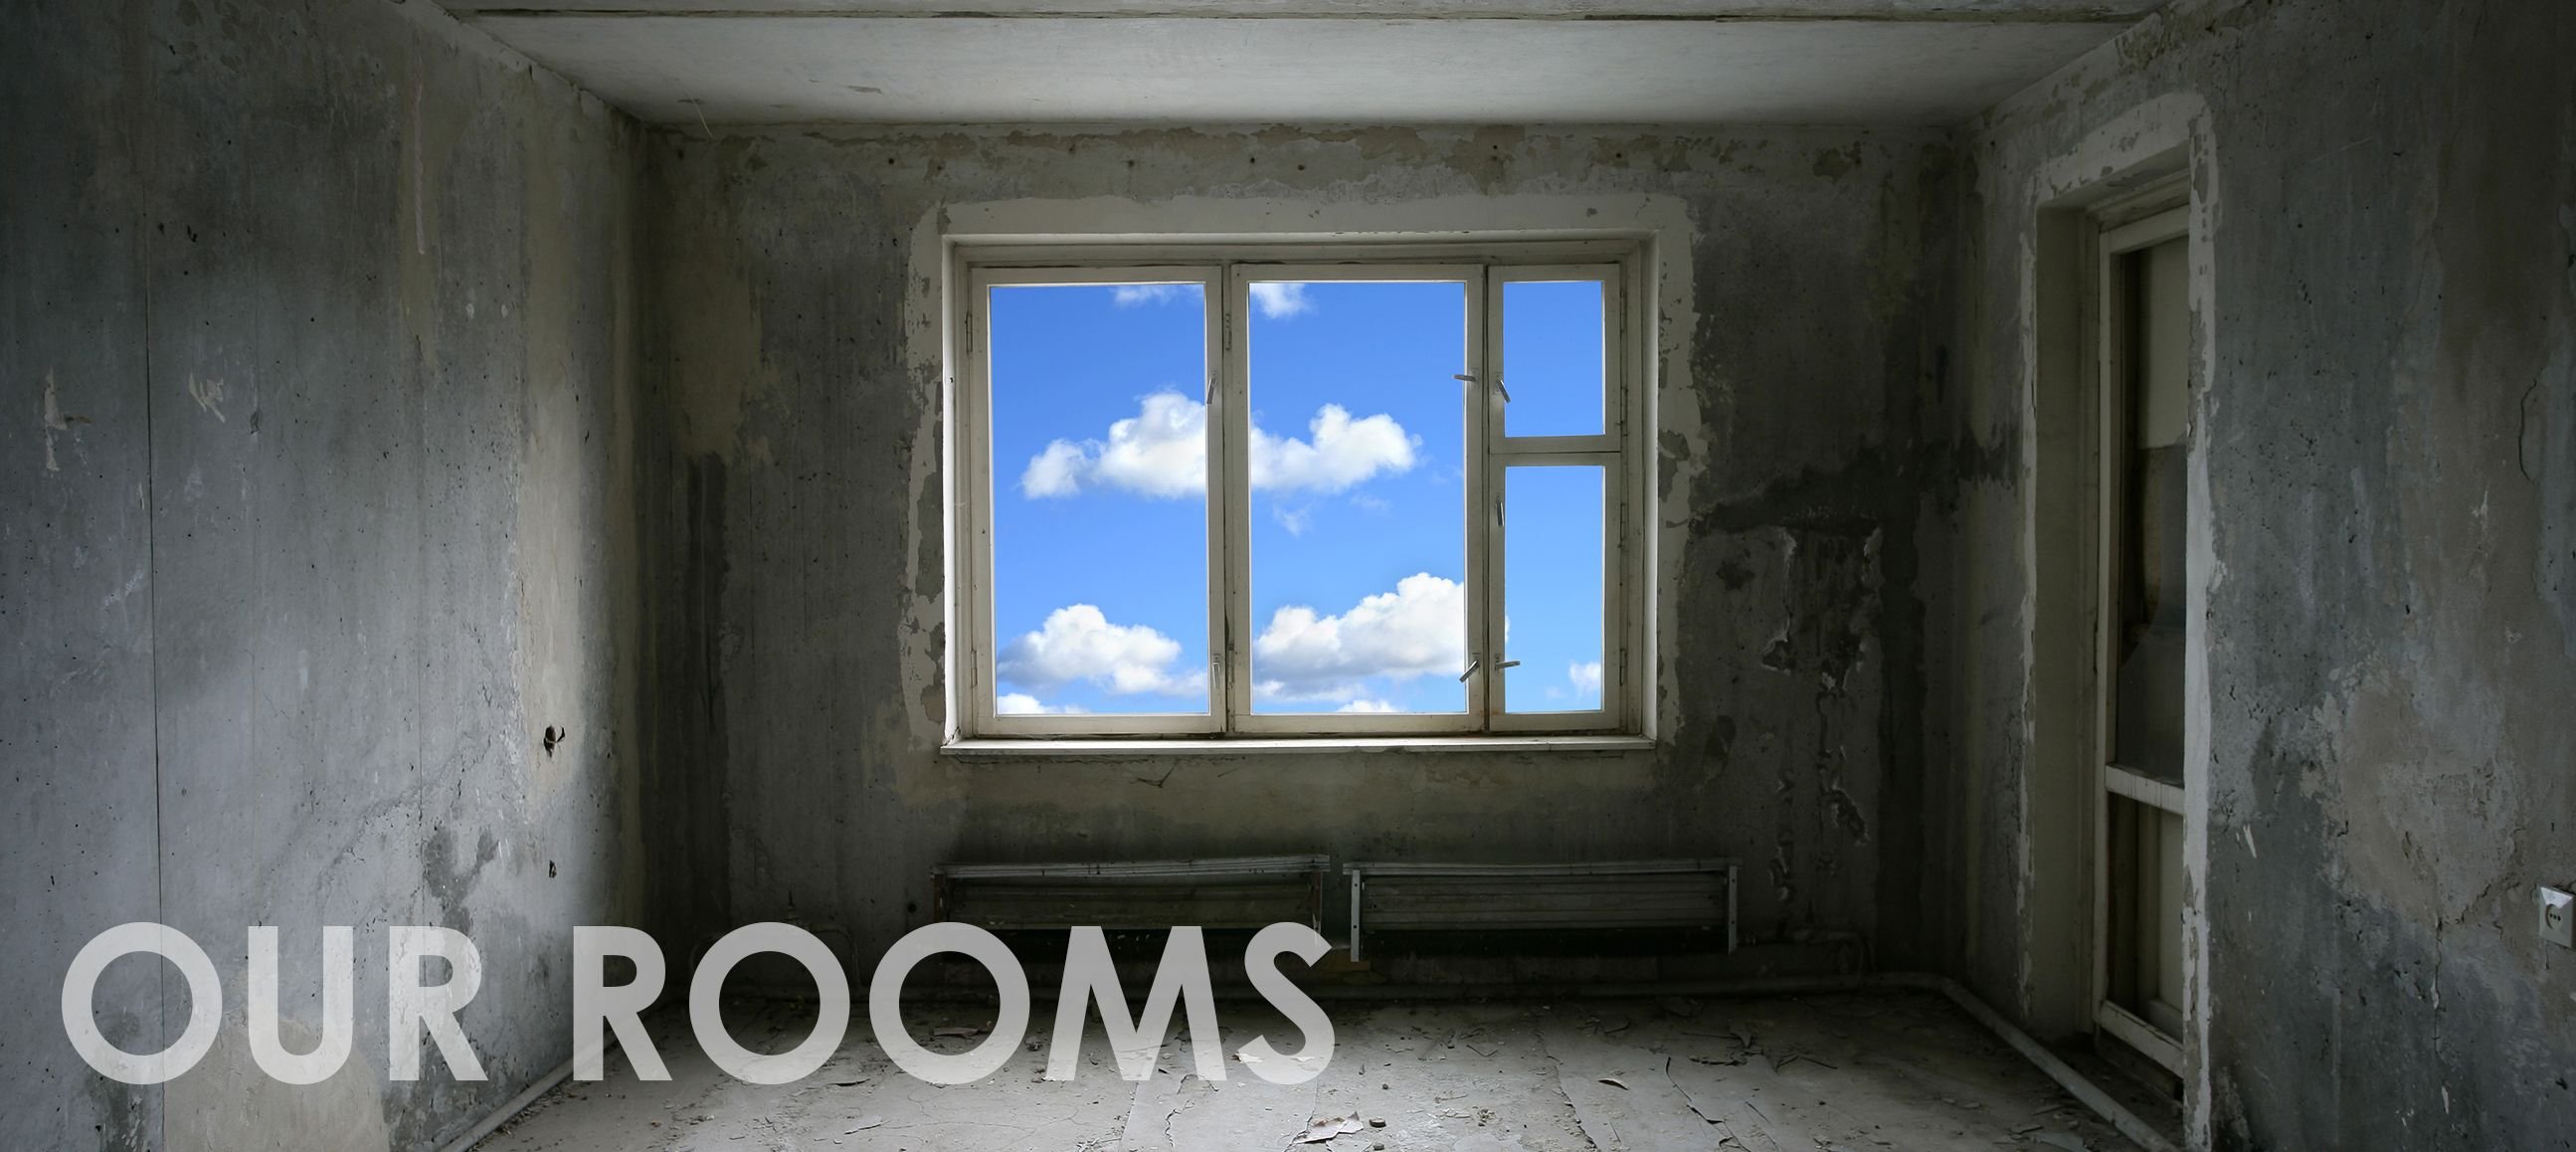 big_escape_our_rooms_header